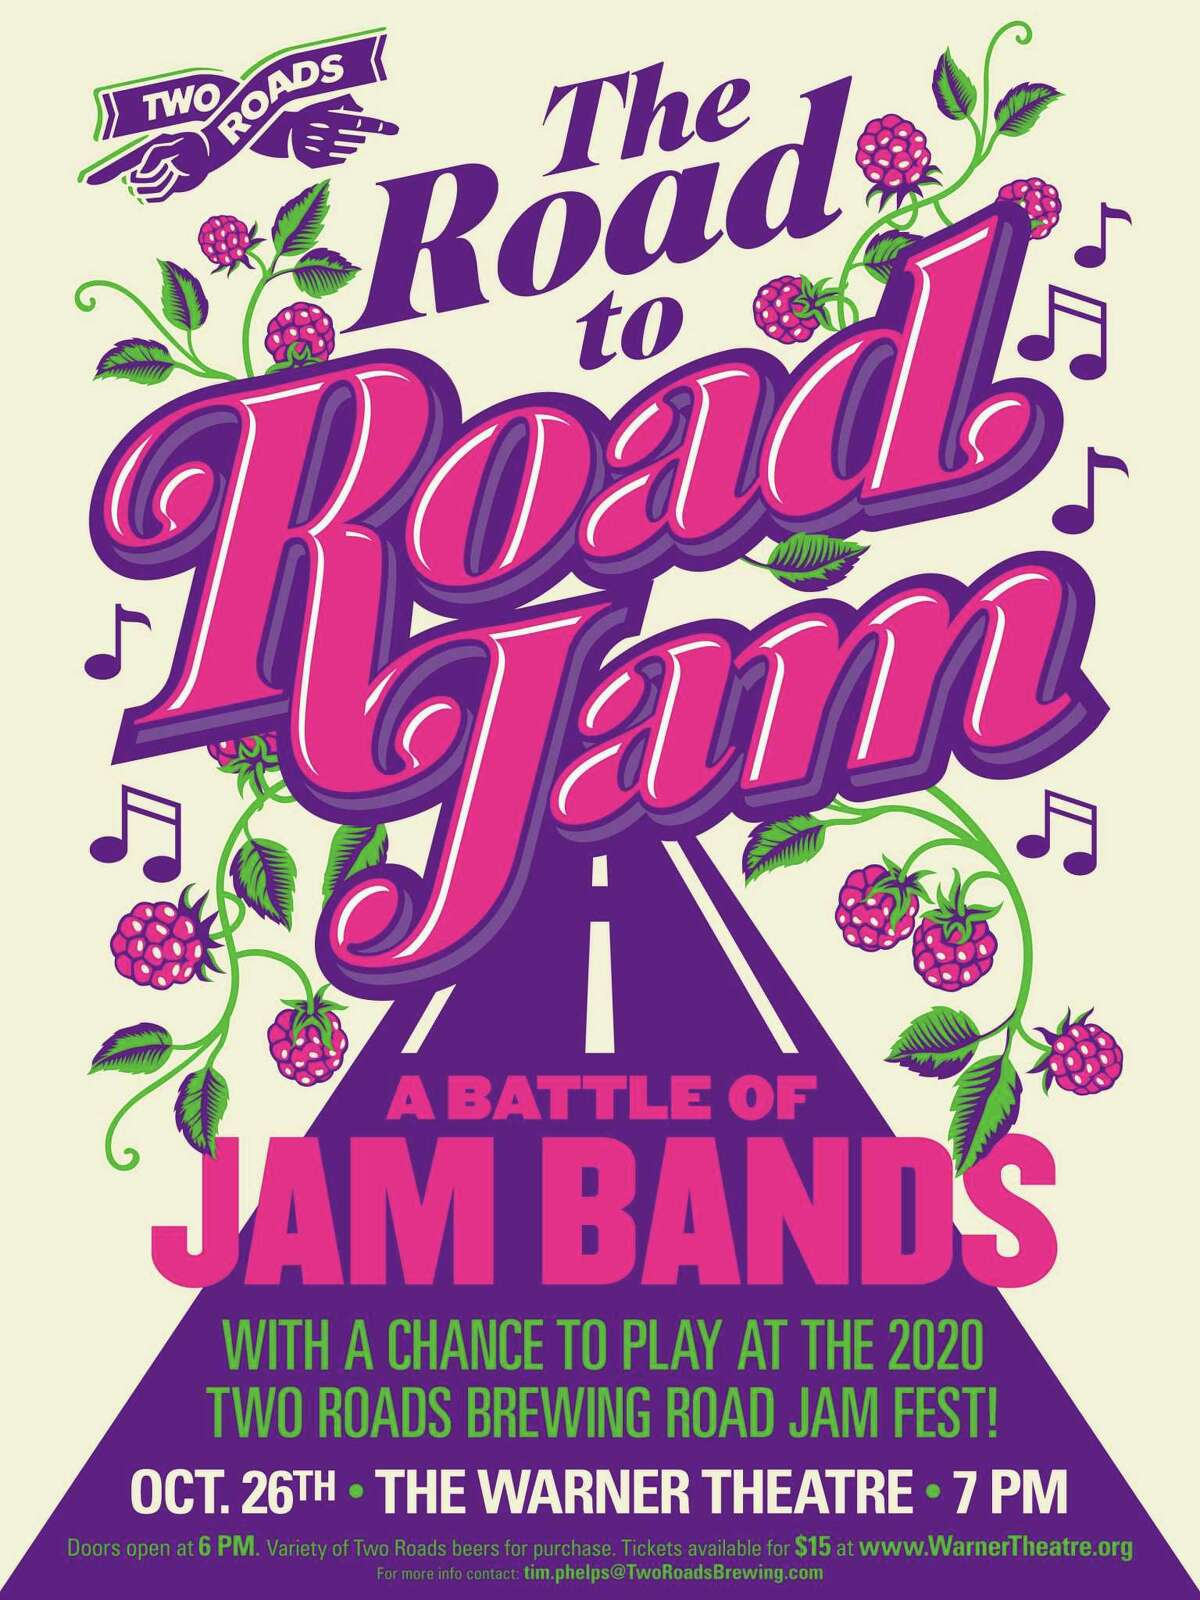 The Warner Theatre is hosting Two Roads Brewery's annual Band Jam on Saturday.